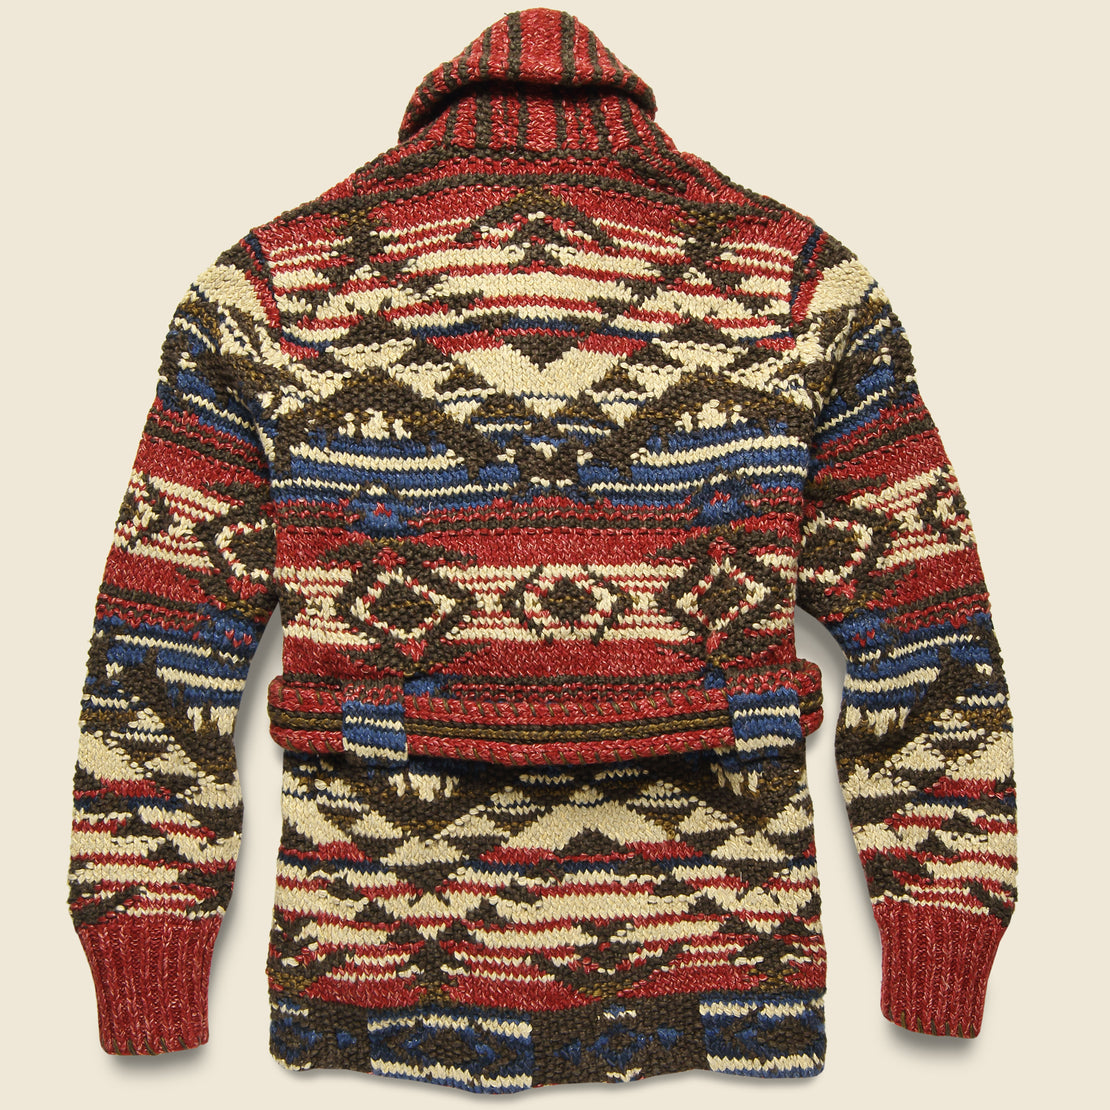 Hand-Knit Ranch Cardigan - Red/Navy/Cream